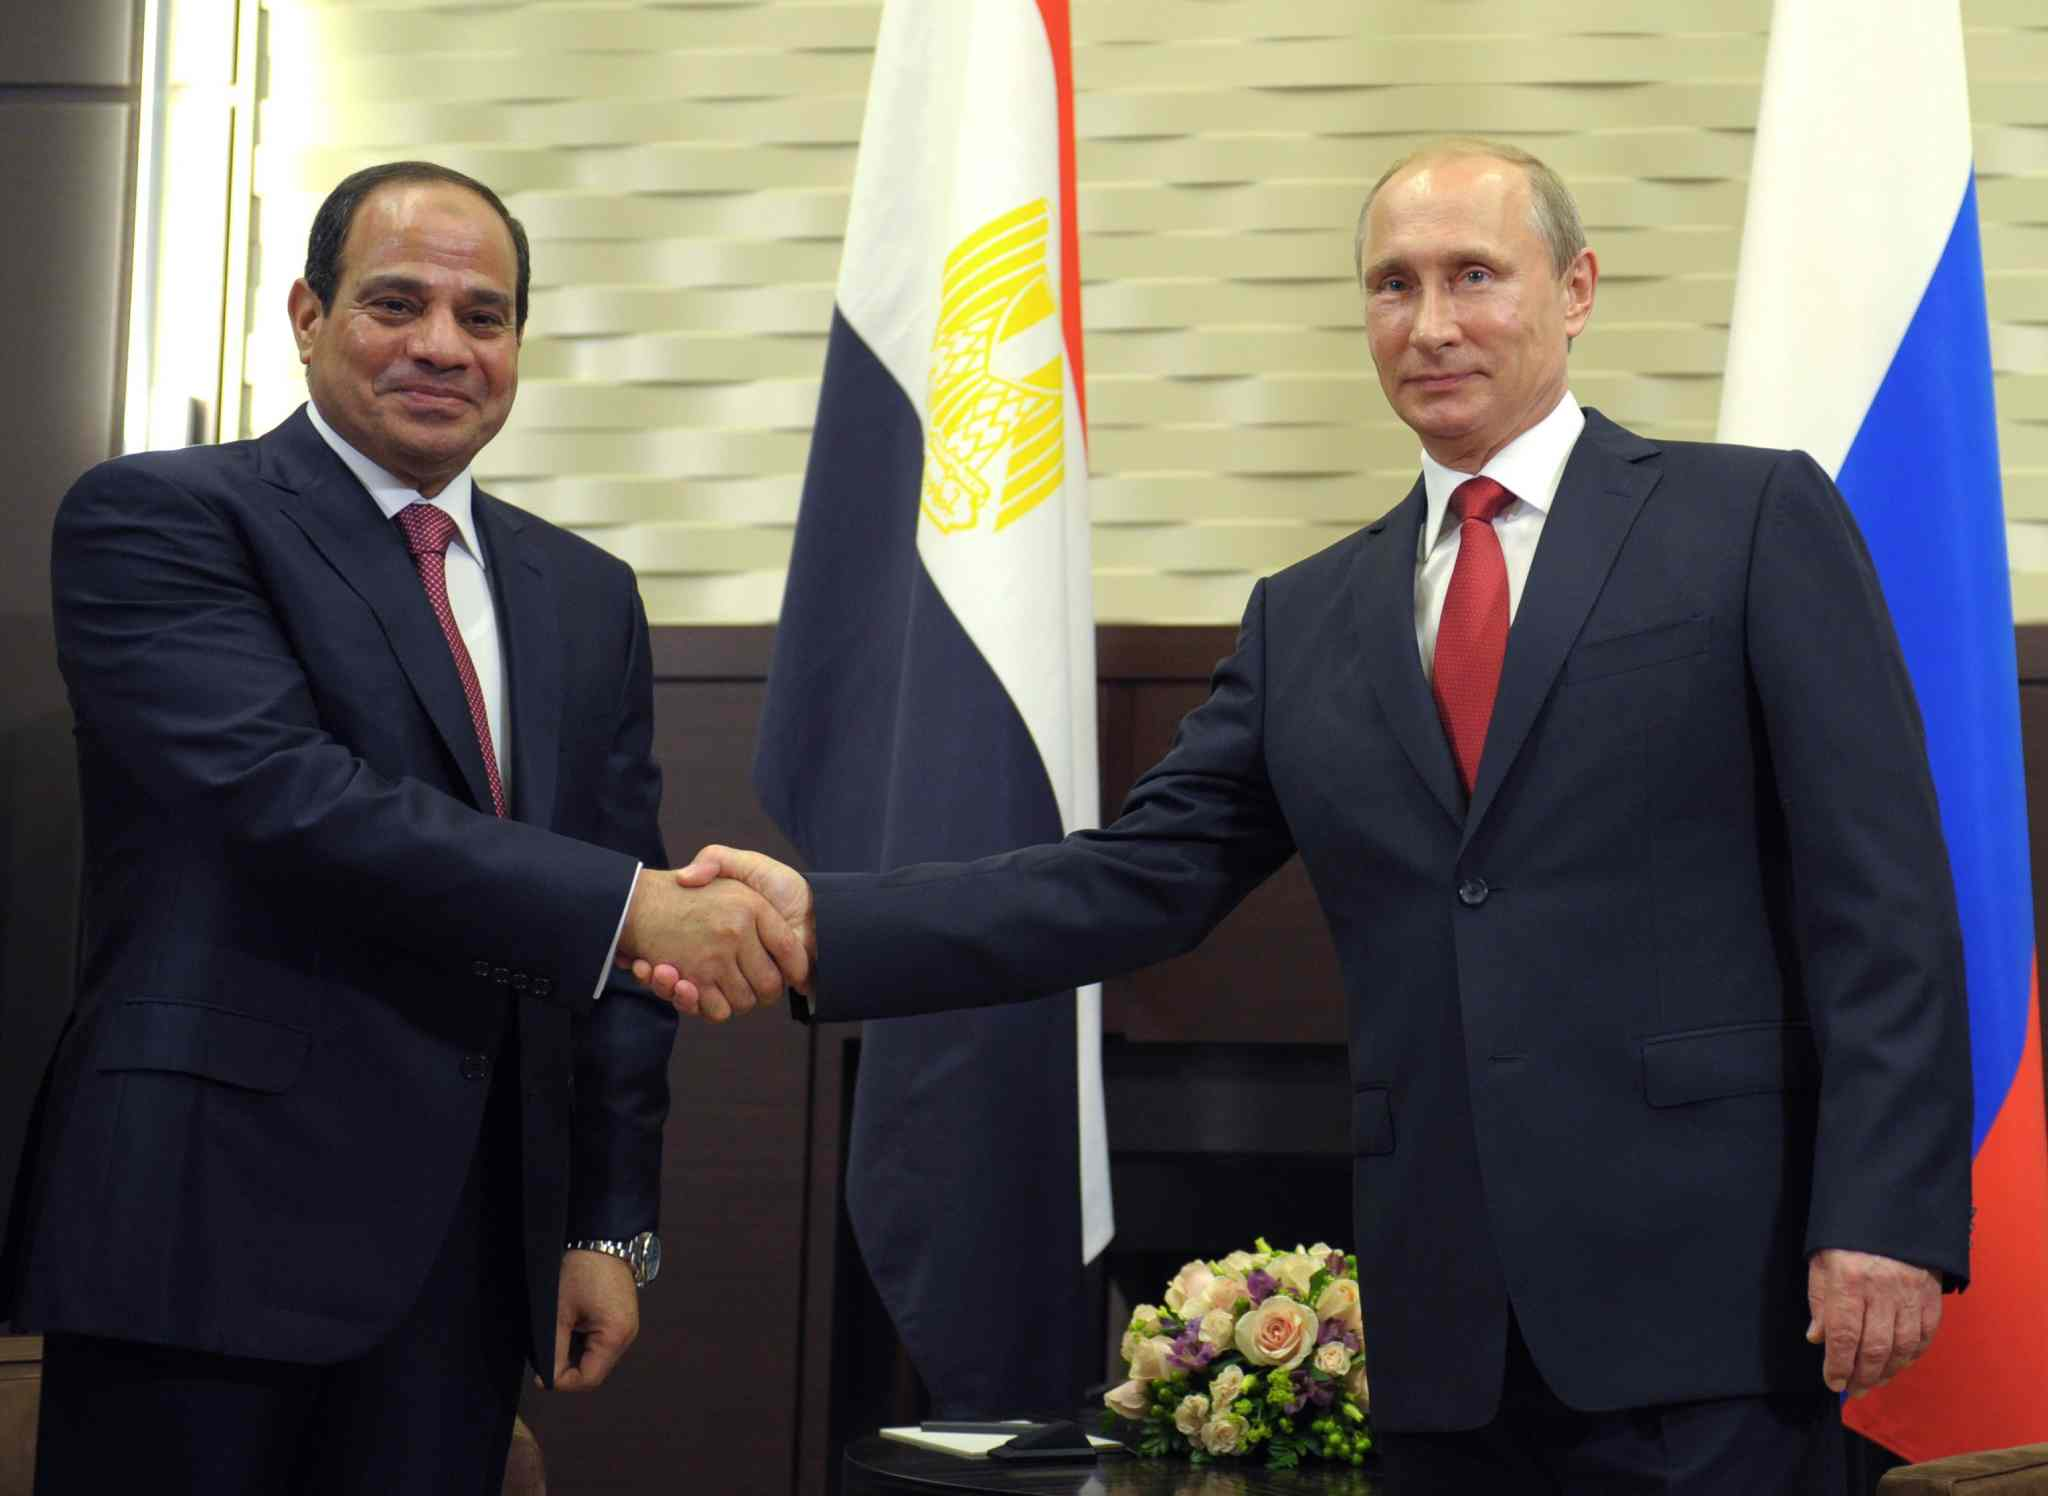 Russian President Vladimir Putin, right, and Egyptian President Abdel-Fattah el-Sissi shake hands during a meeting in the Russian Black Sea resort of Sochi, Russia, Tuesday, Aug. 12, 2014.